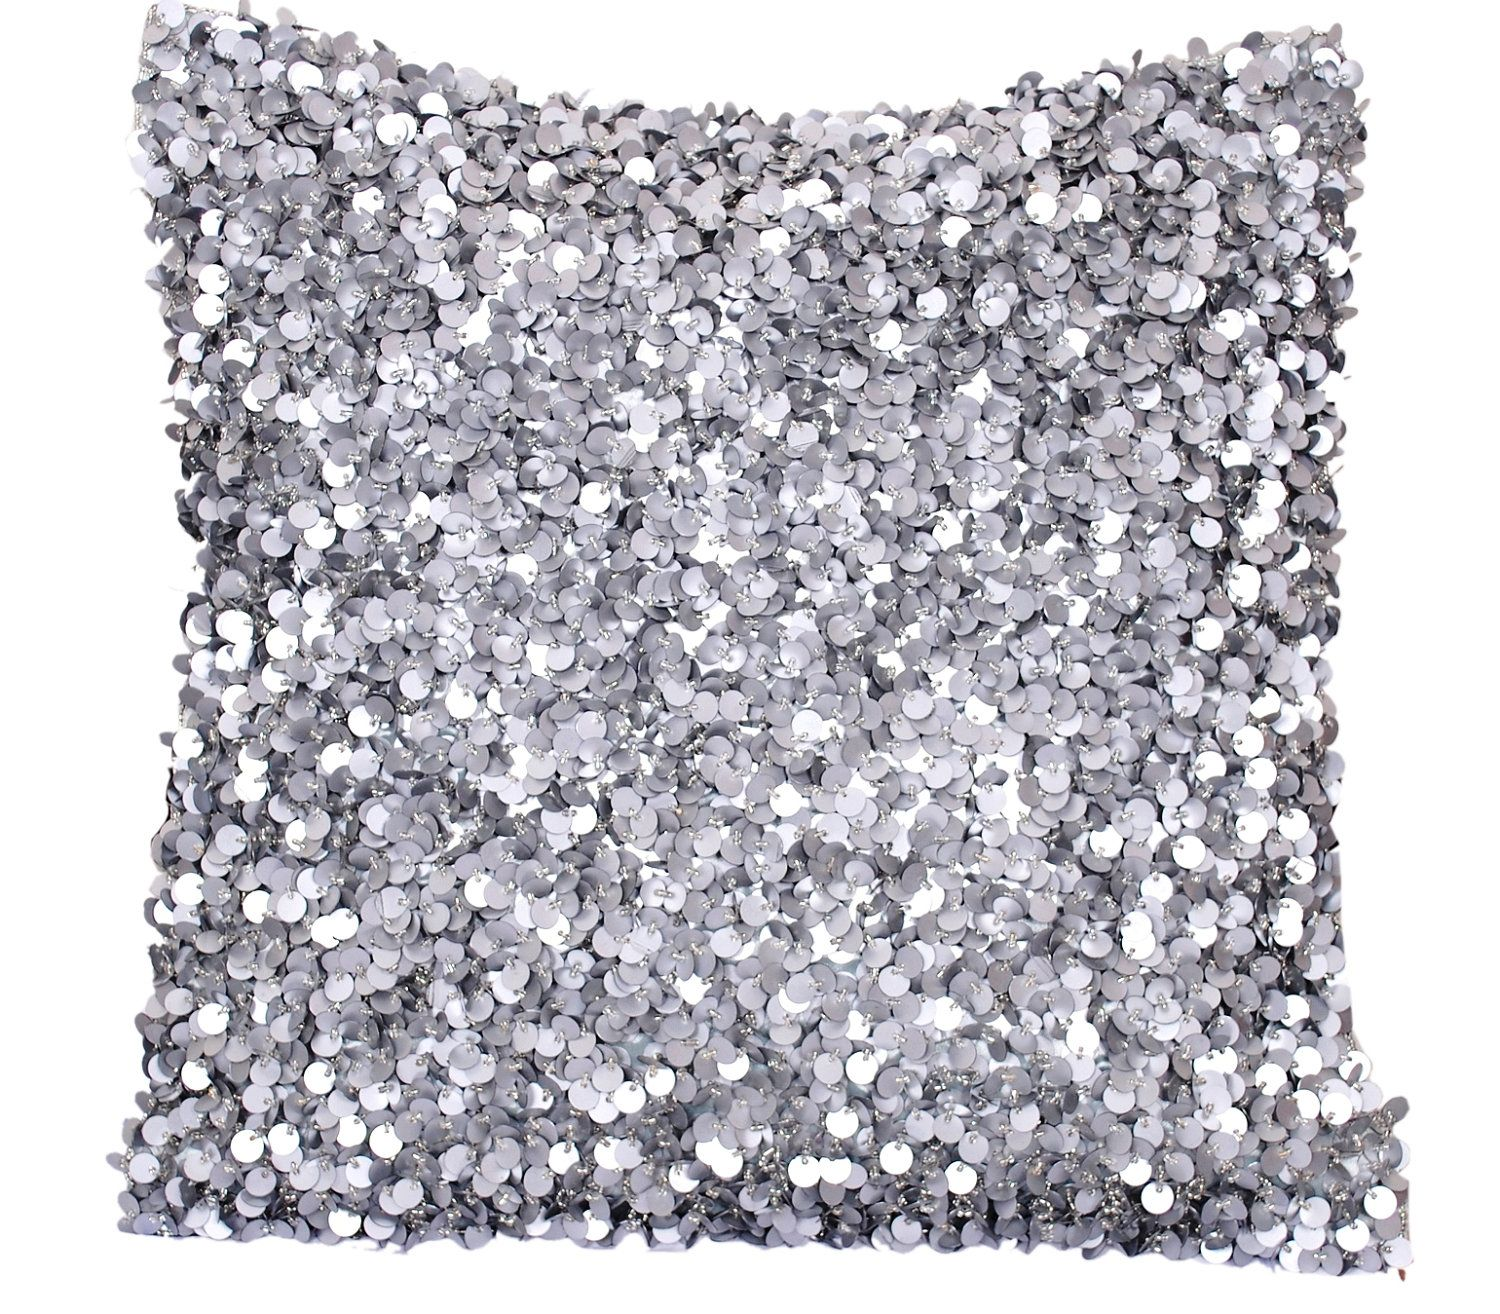 Decorative Pillows With Sequins : Silver Pillow Cover, One 16 x 16 Decorative Throw Pillow, Silver Grey, Sequins, Beads, Glitter ...